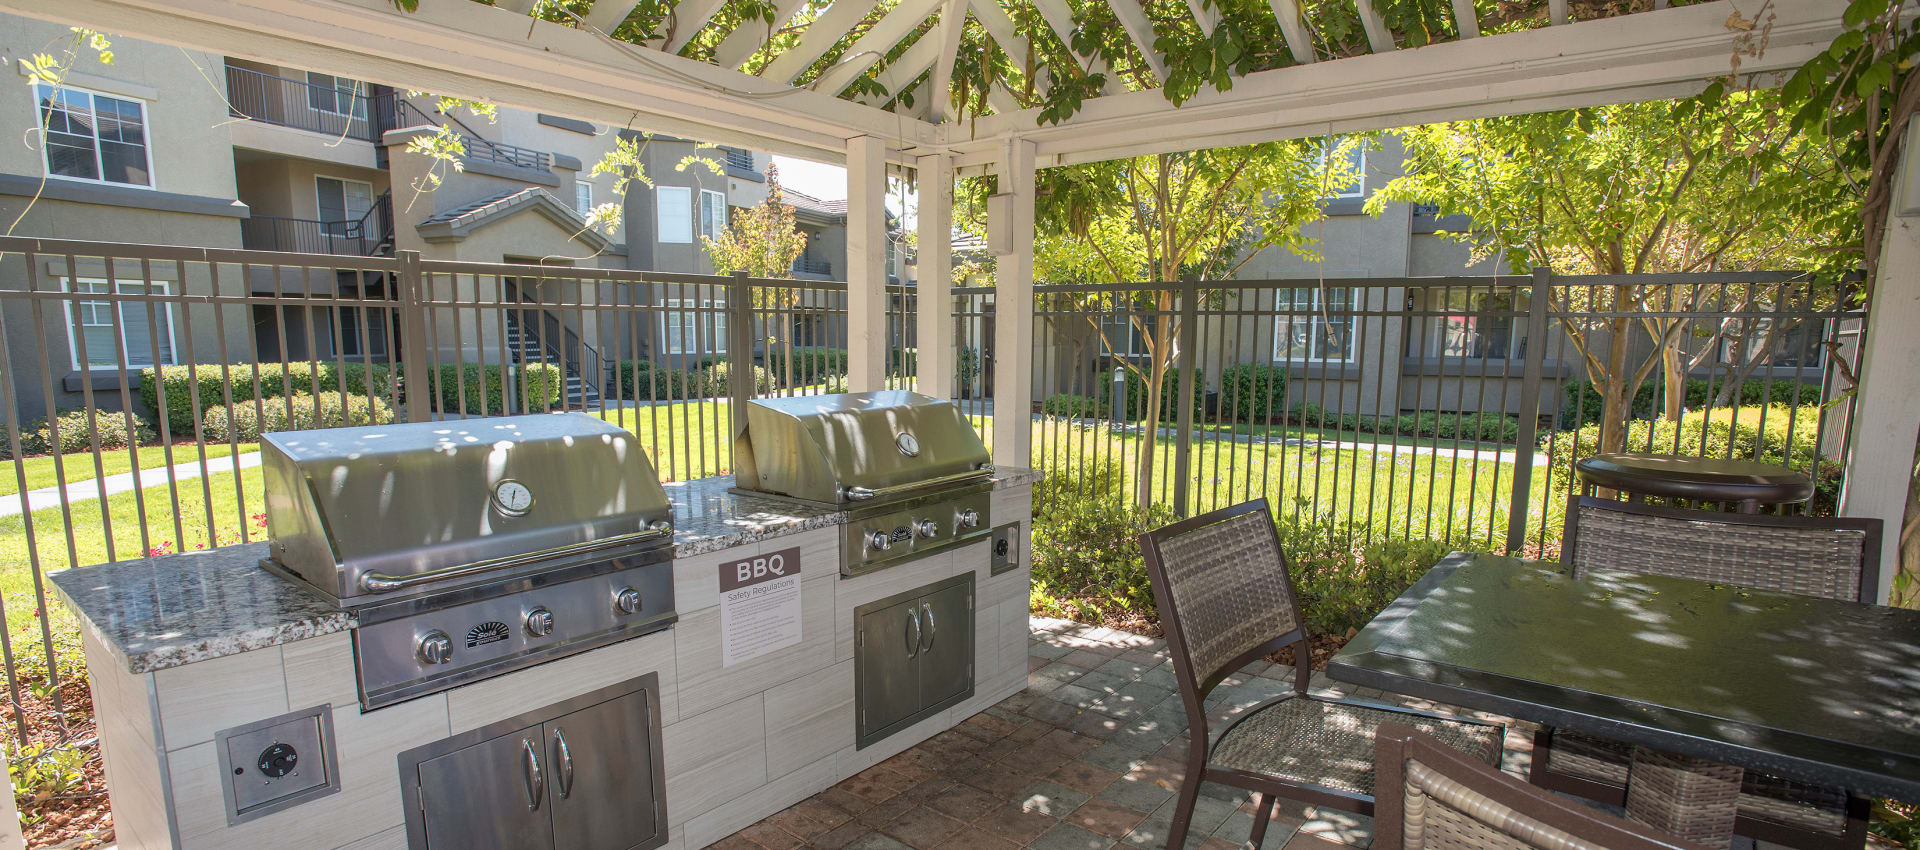 Apartments with a luxury bbq area at The Artisan Apartment Homes in Sacramento, California